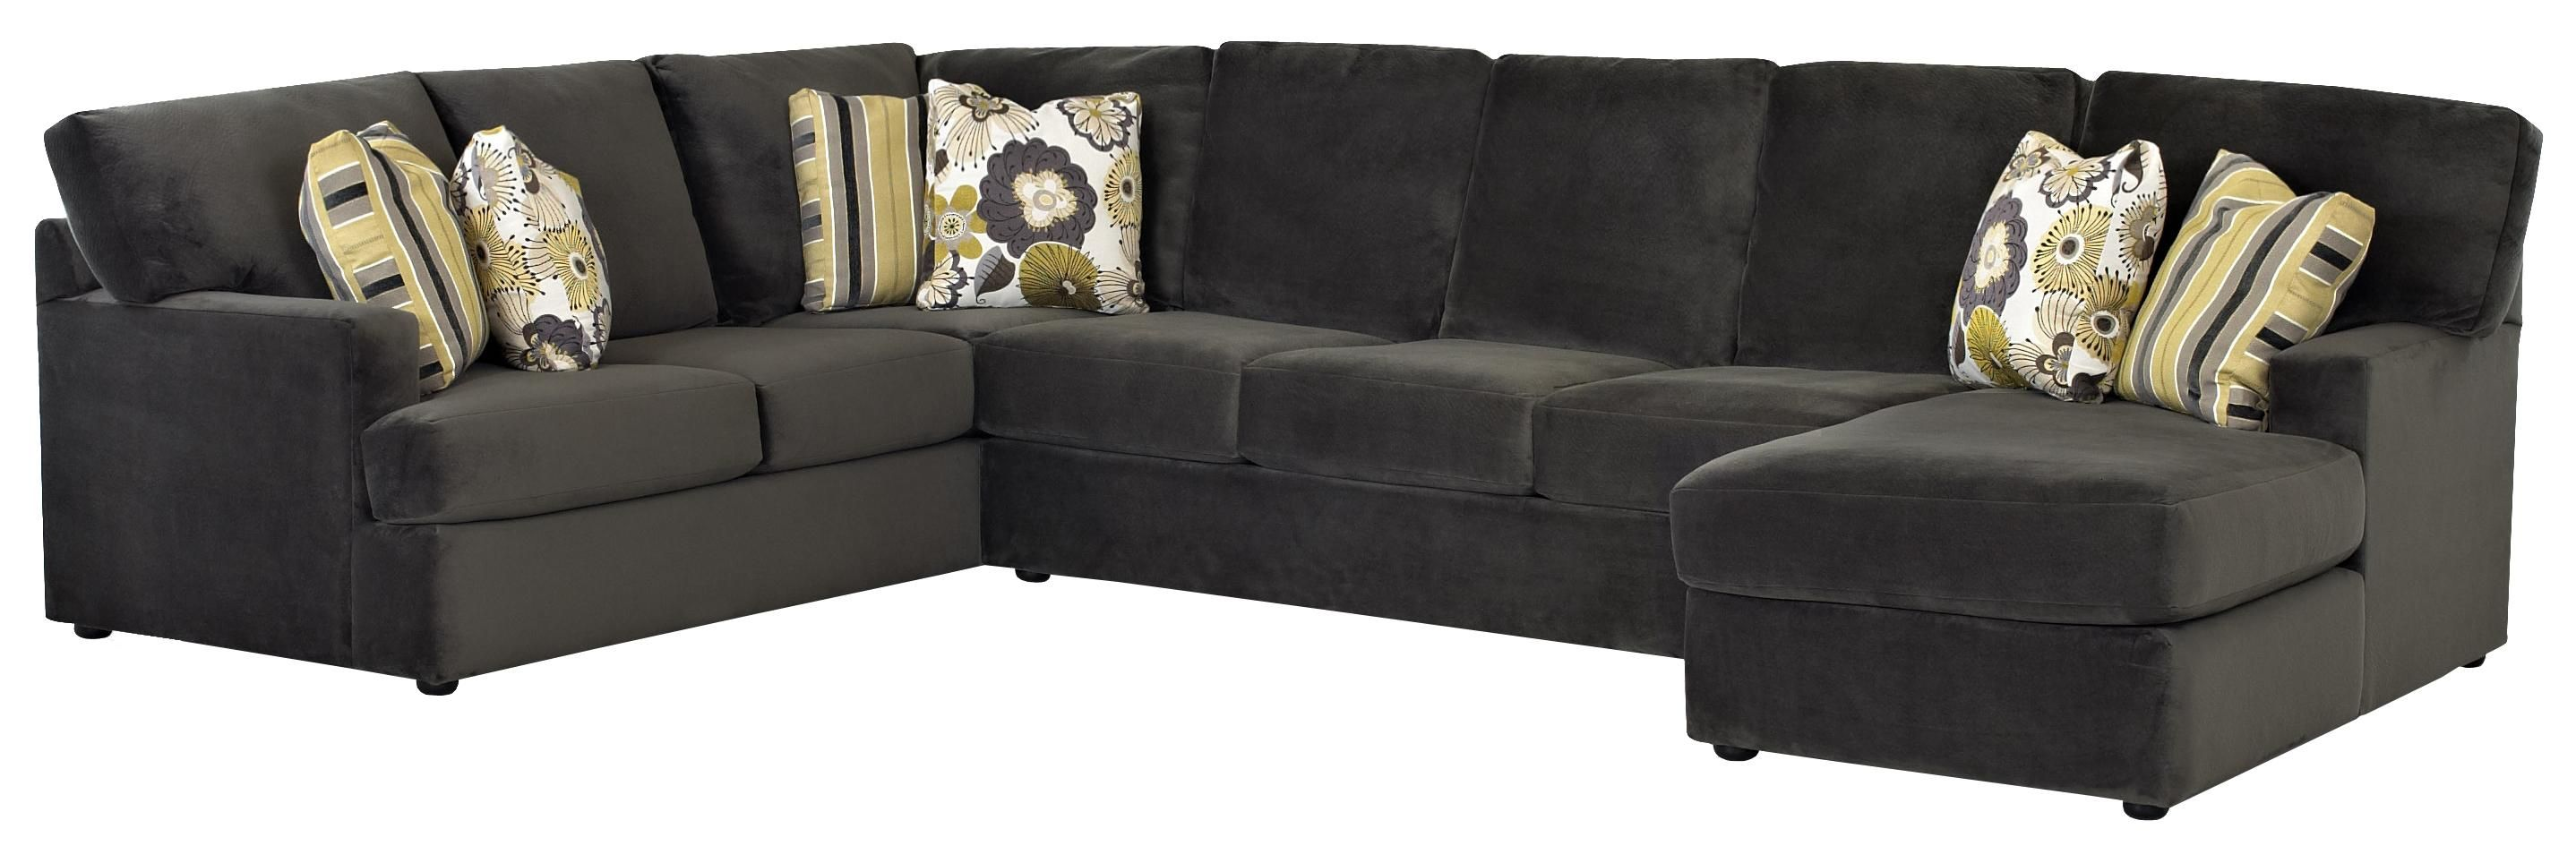 Maclin K91500 Sectional Sofa with Right Side Chaise by Klaussner | Wolf Furniture  sc 1 st  Pinterest : klaussner sectionals - Sectionals, Sofas & Couches